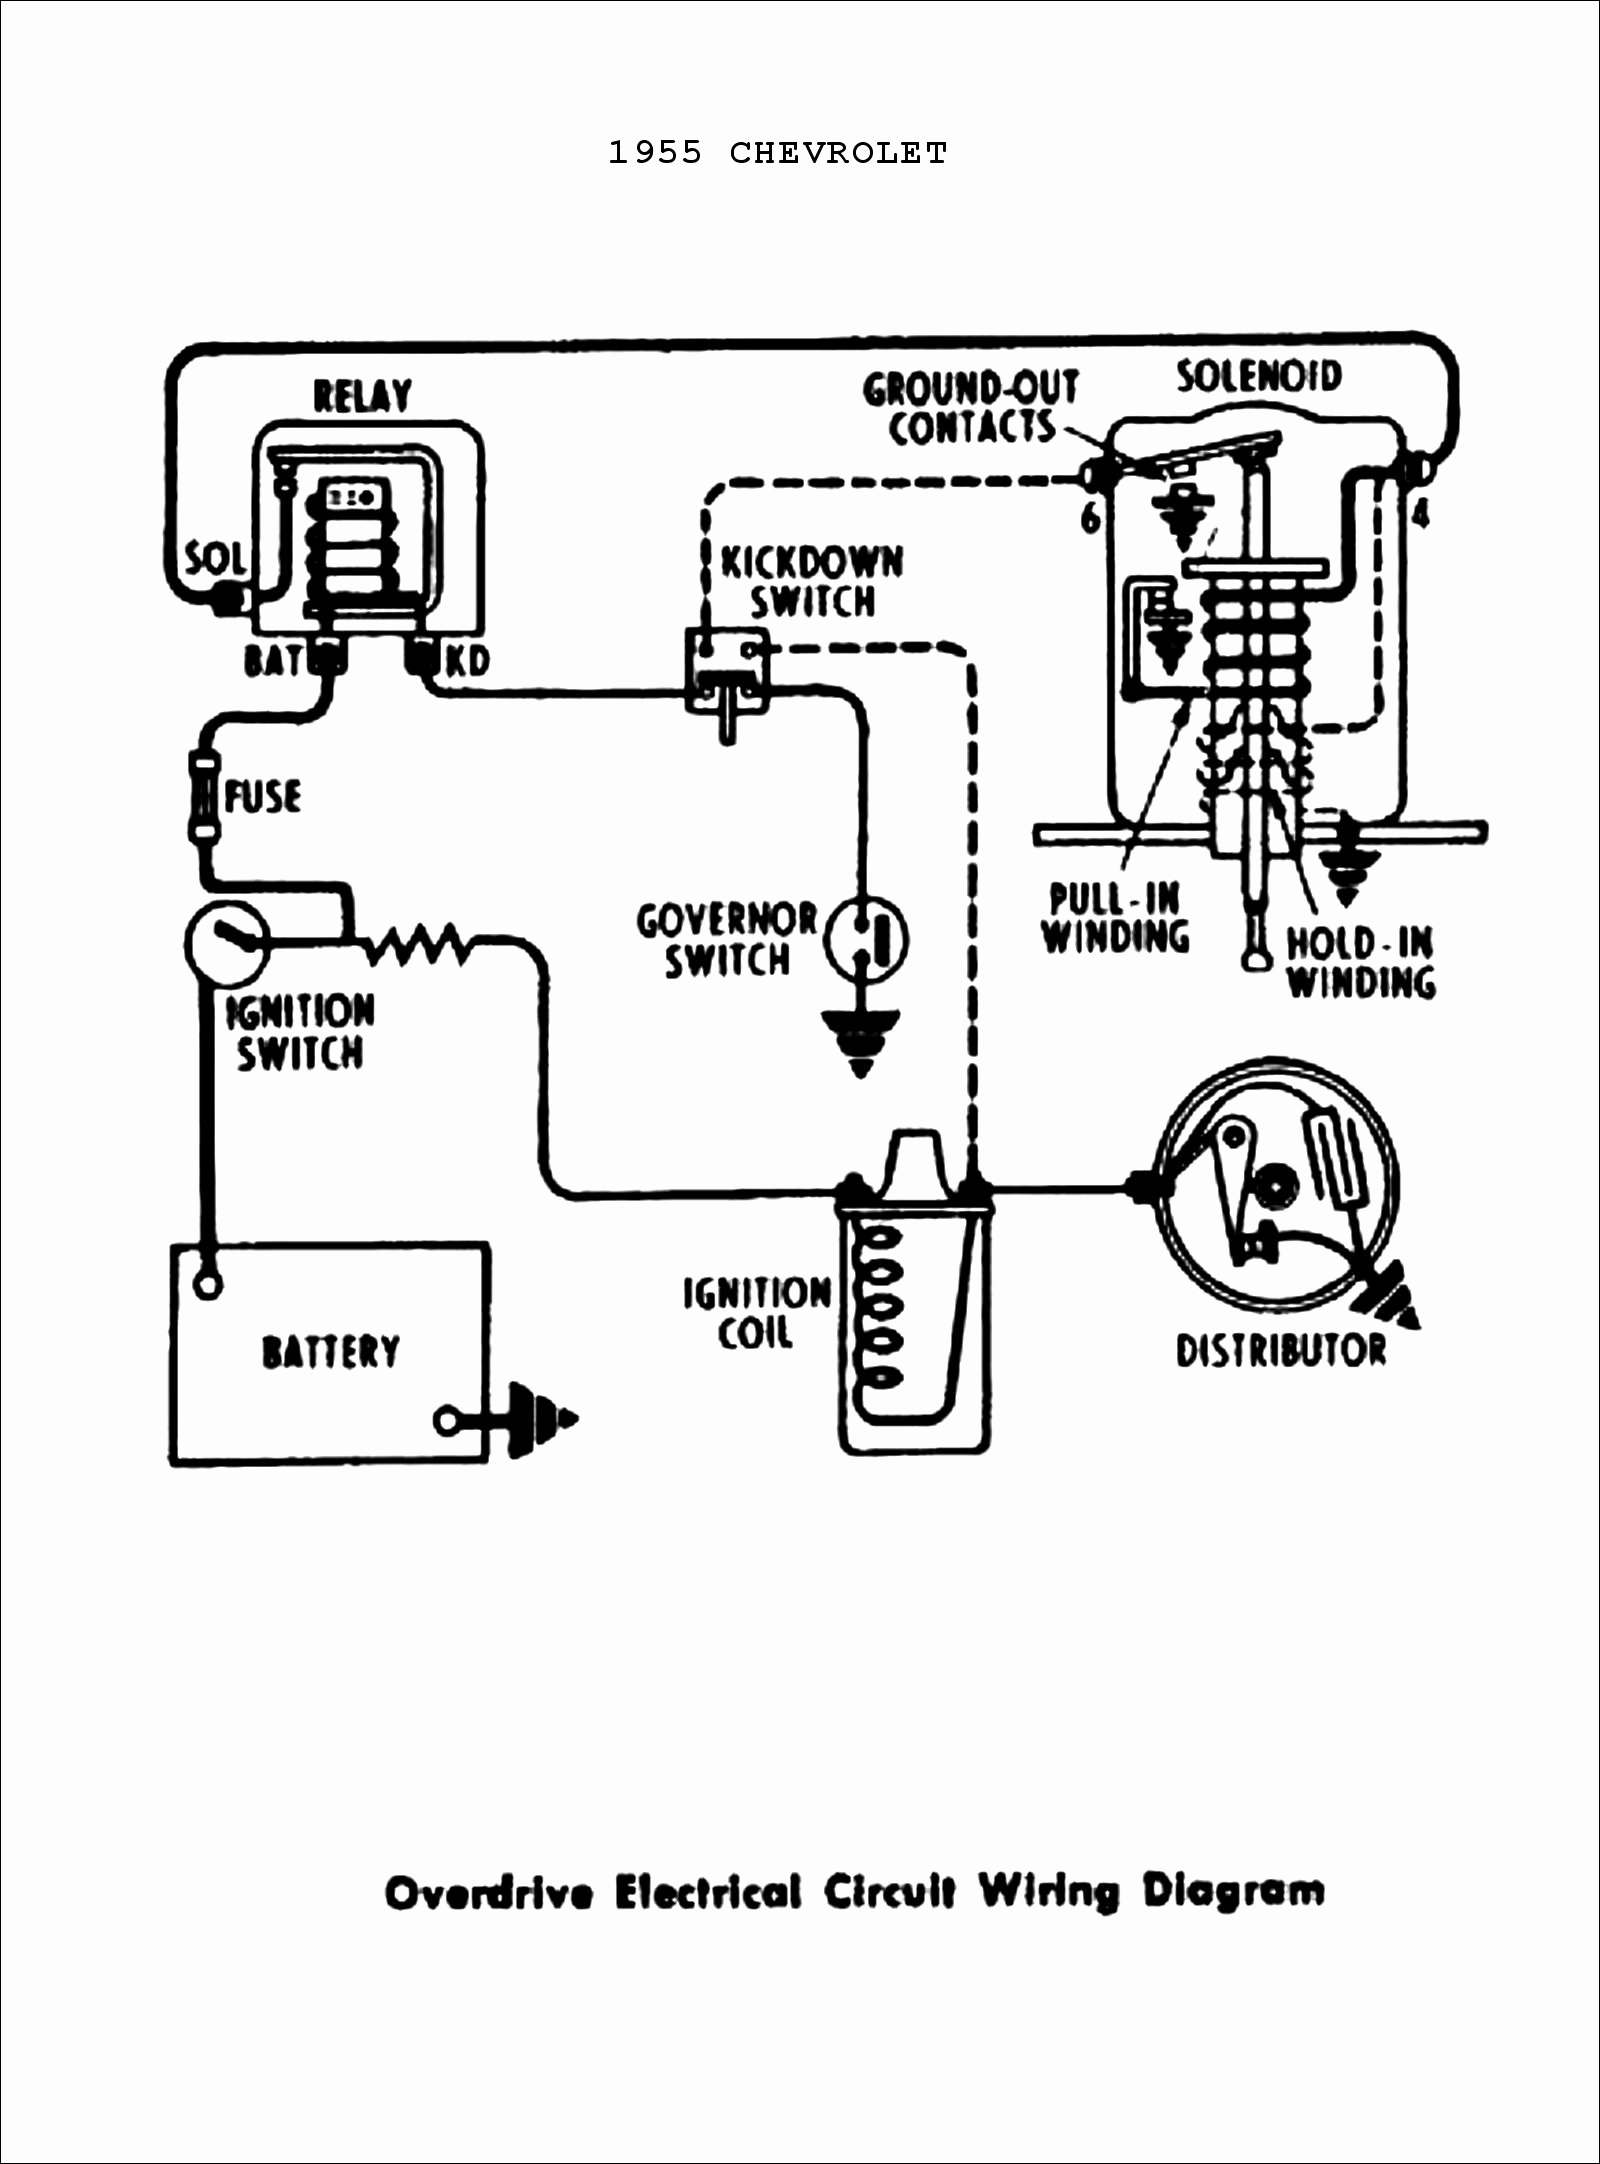 55 Chevy Wiring Schematic - Wiring Diagram Networks